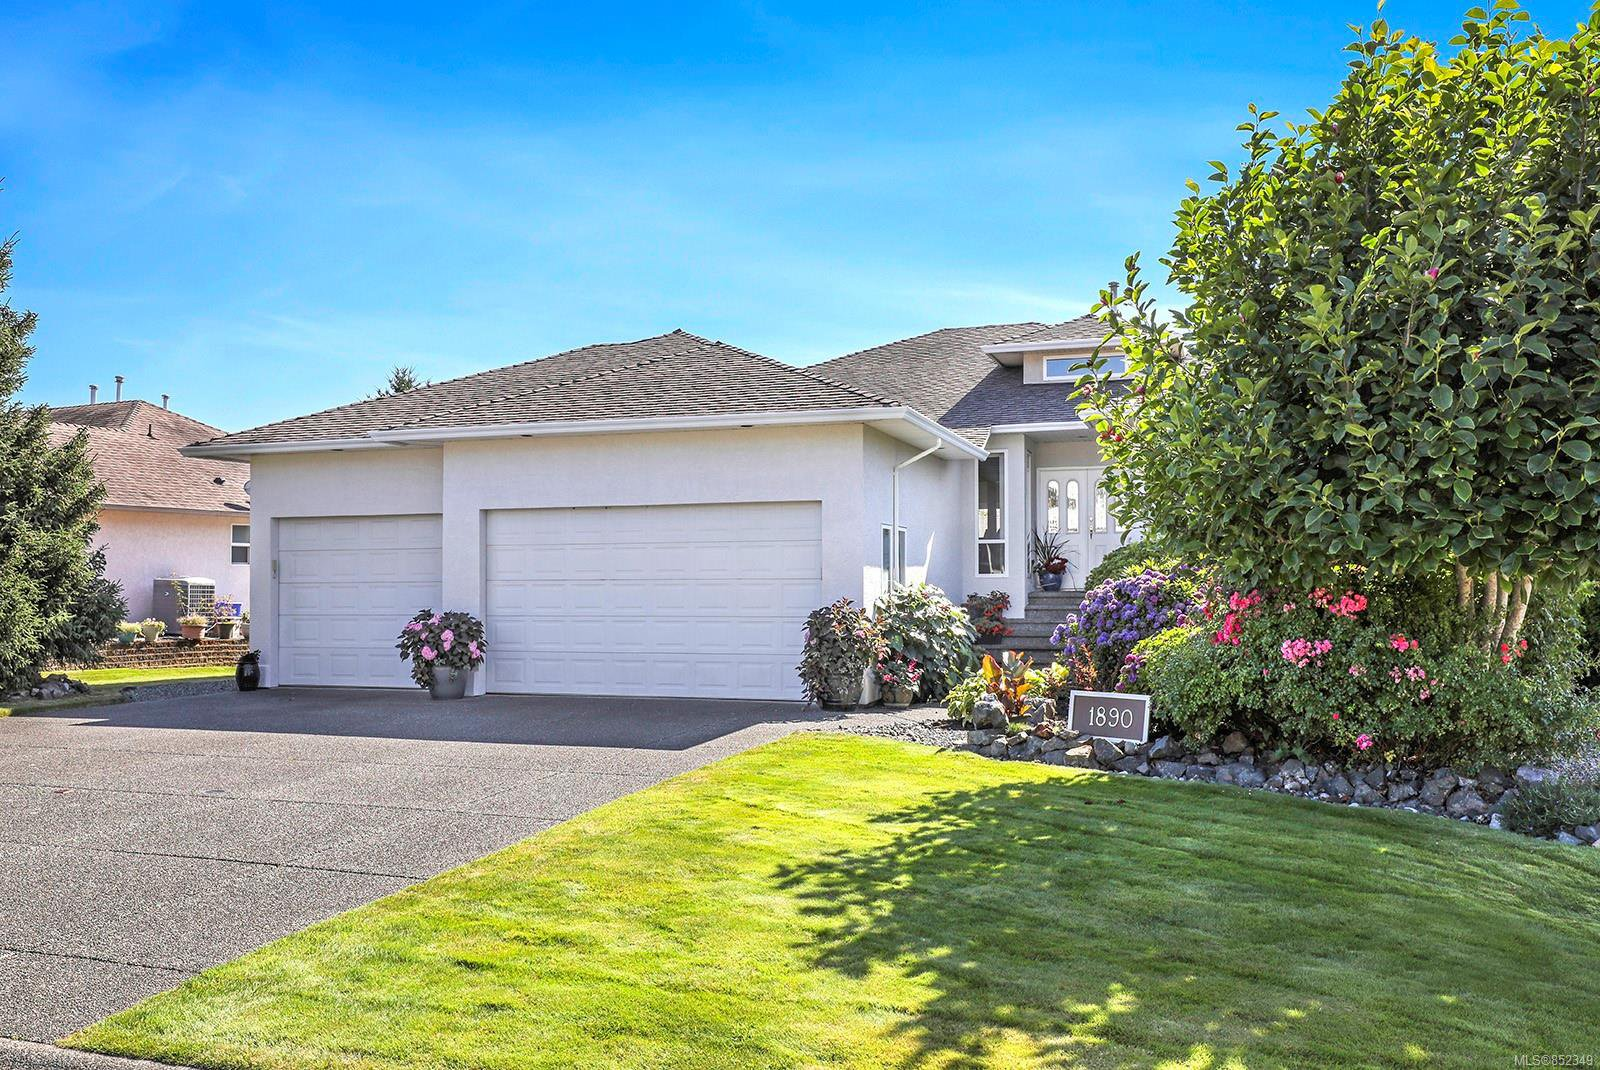 Main Photo: 1890 Mallard Dr in : CV Courtenay East House for sale (Comox Valley)  : MLS®# 852349